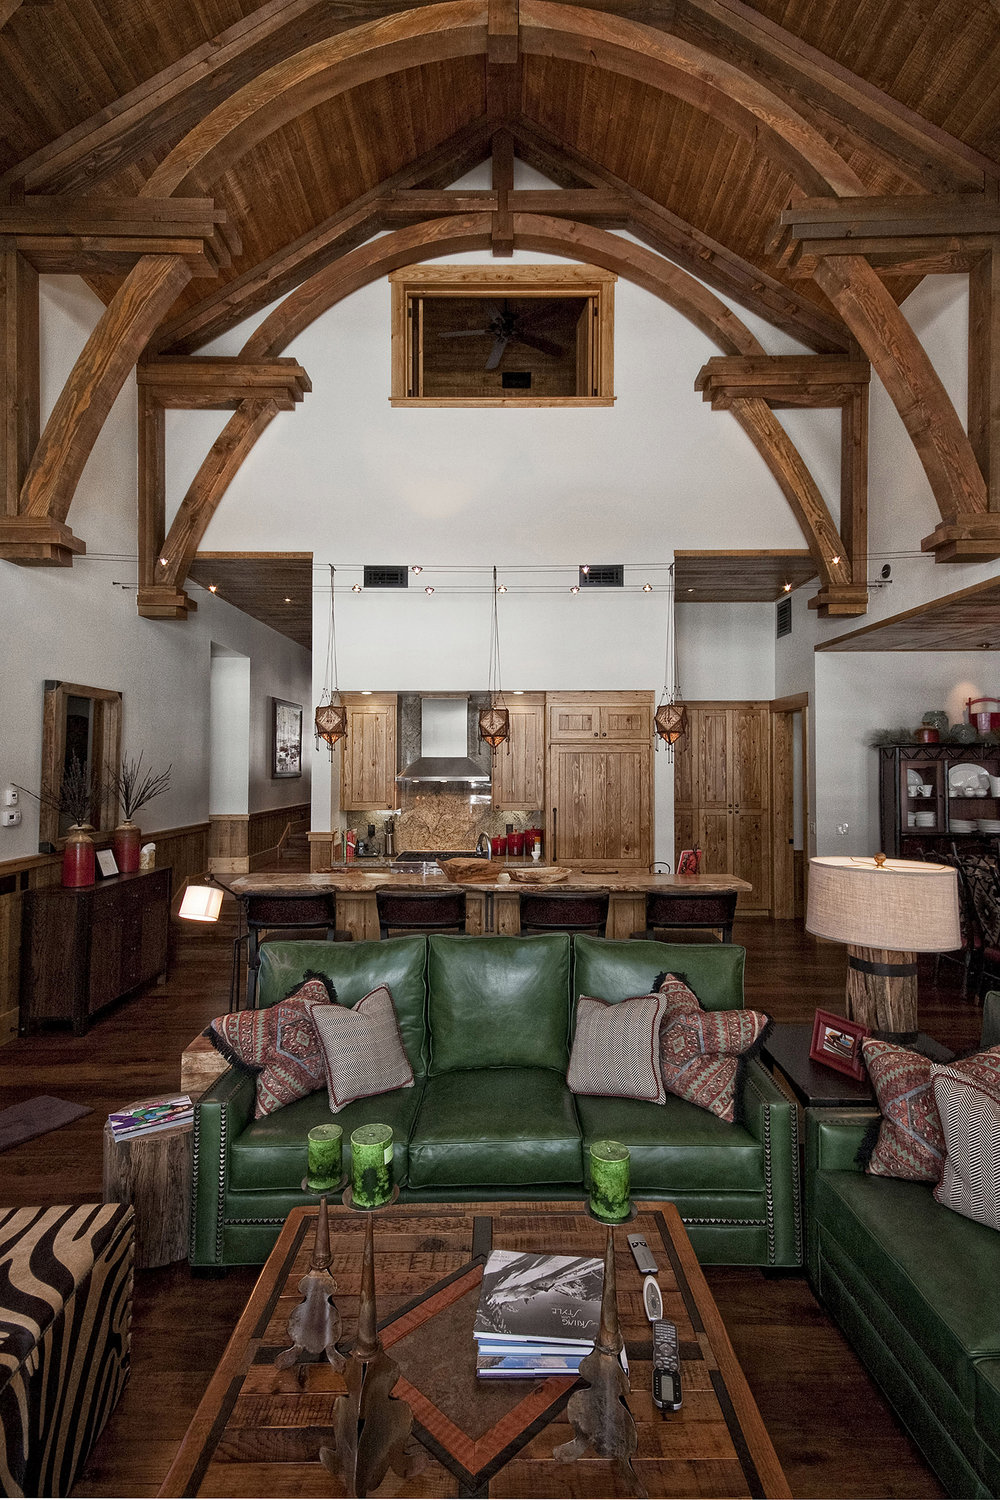 Lot 296_Great Room_Arched Ceiling_Ornamental Wood Beams.jpg